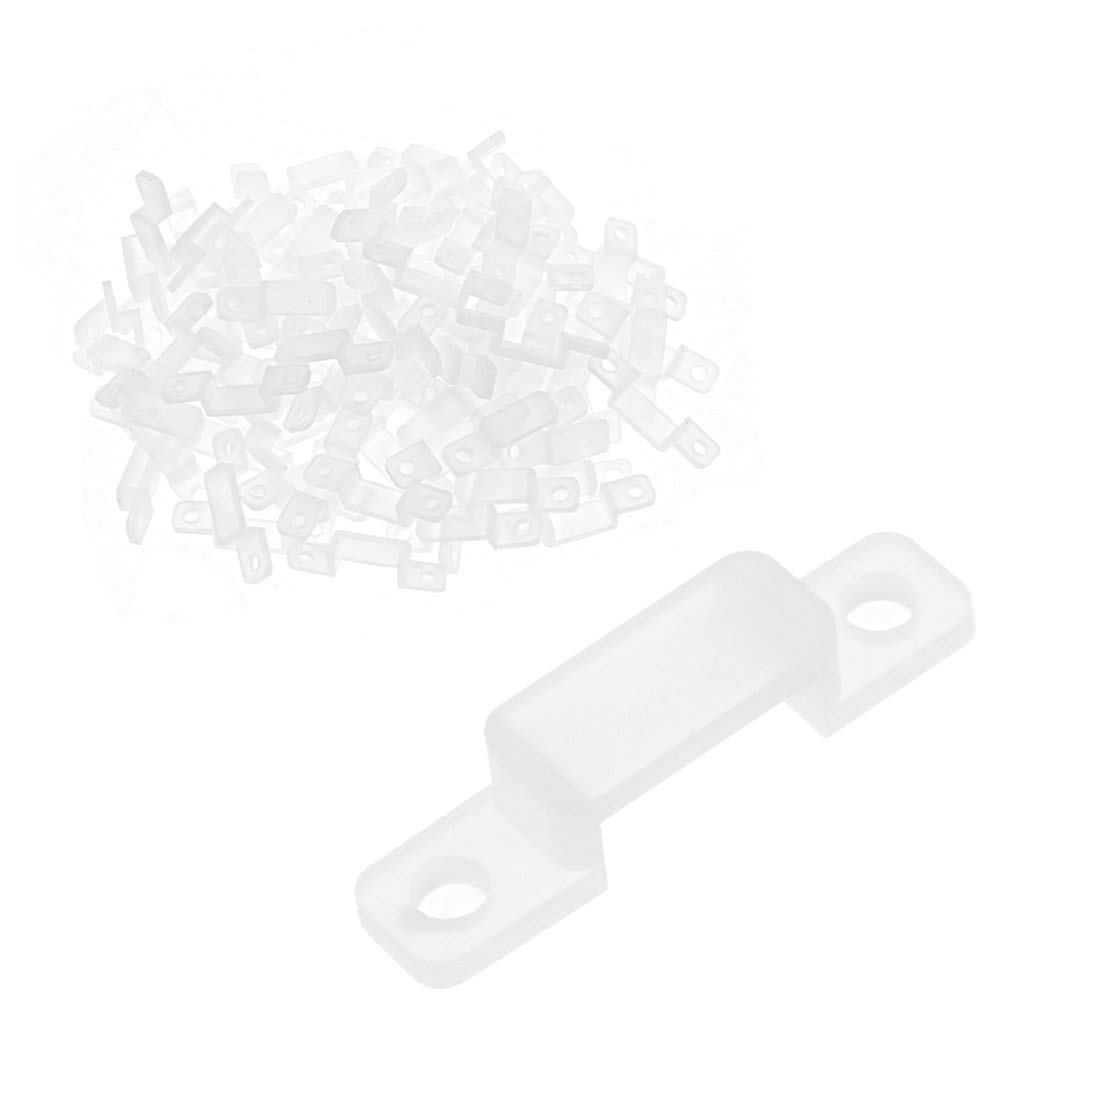 uxcell 100 Pcs Silicone Fix Mounting Brackets Clip for 8mm Wide 3528 LED Strip Light